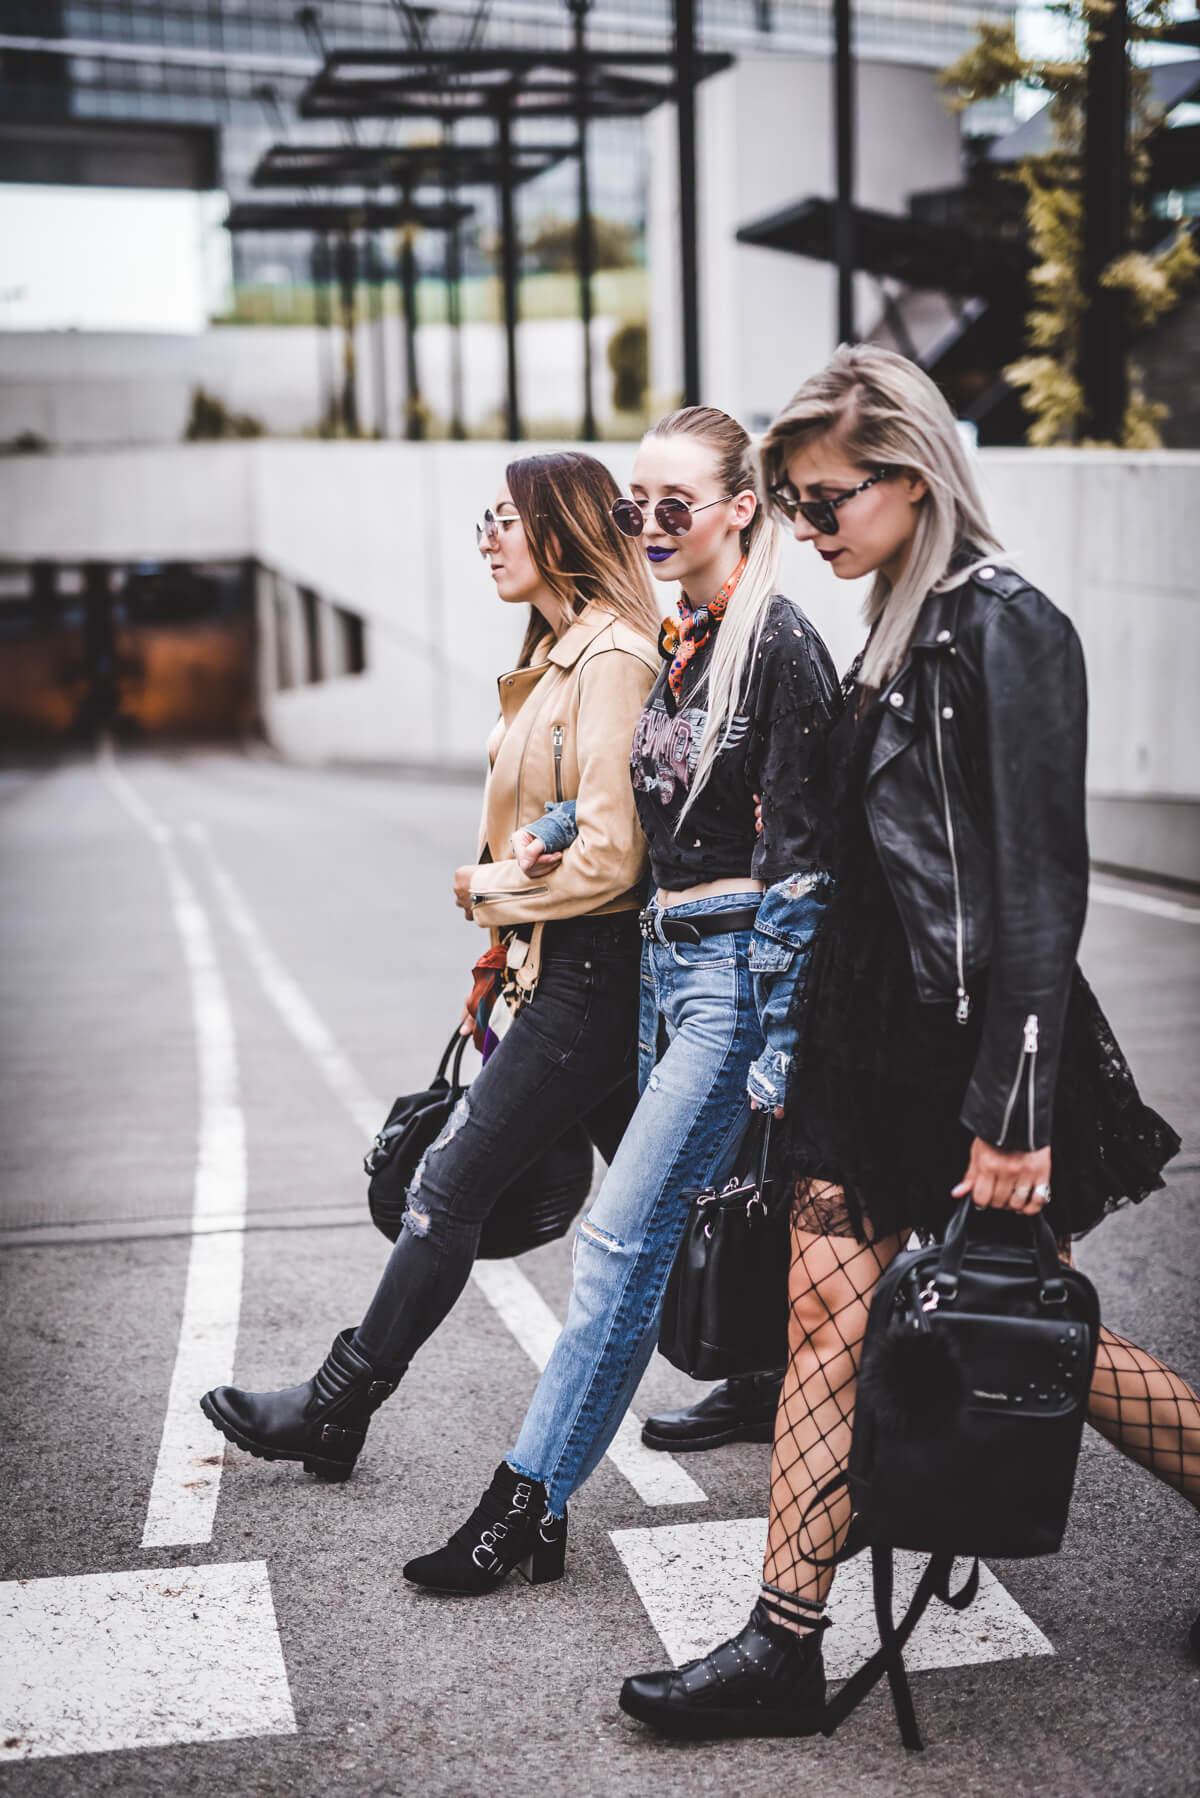 Biker Boots by The Cosmopolitas